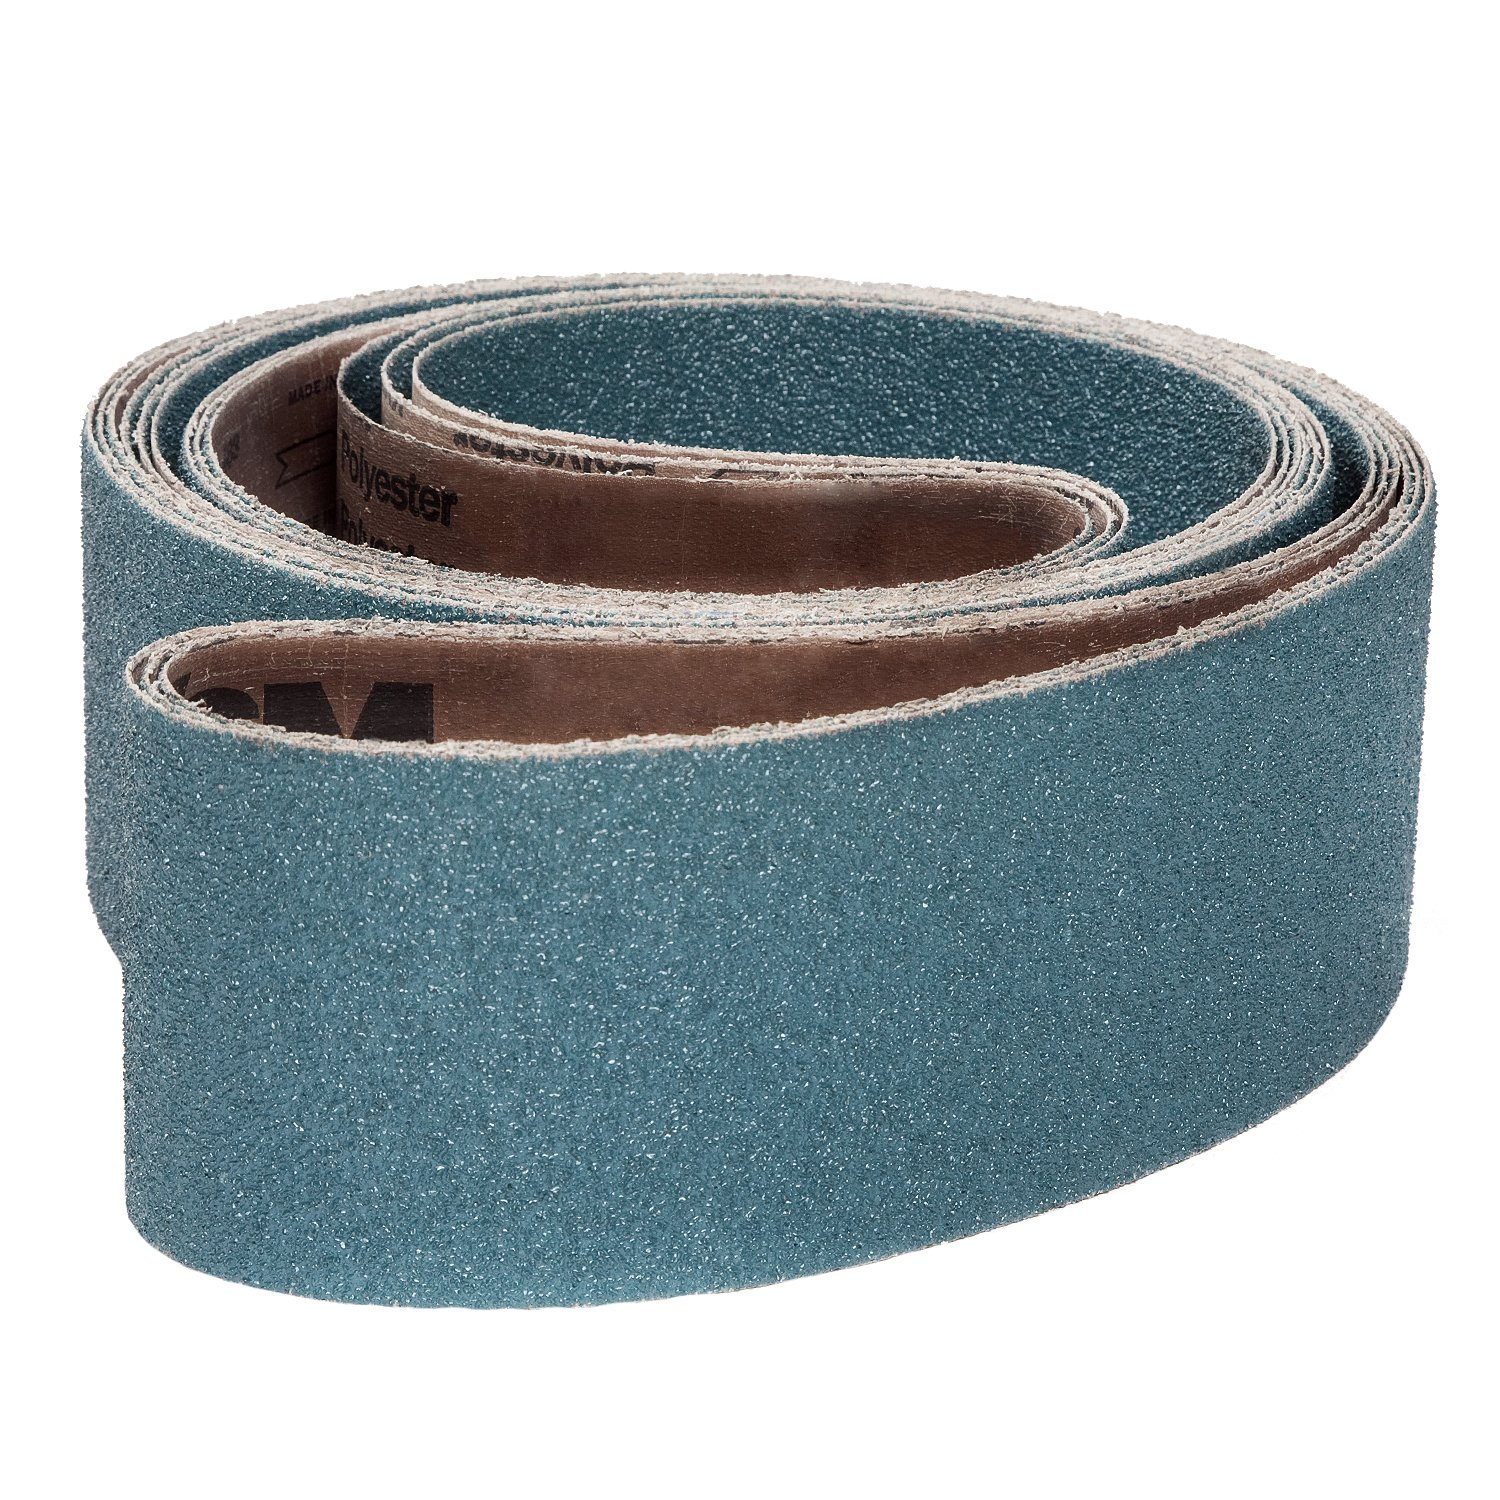 Zirconia 4 Width 106 Length VSM Abrasives Co. 4 Width Medium Grade Pack of 10 106 Length 80 Grit Blue Cloth Backing VSM 110542 Abrasive Belt